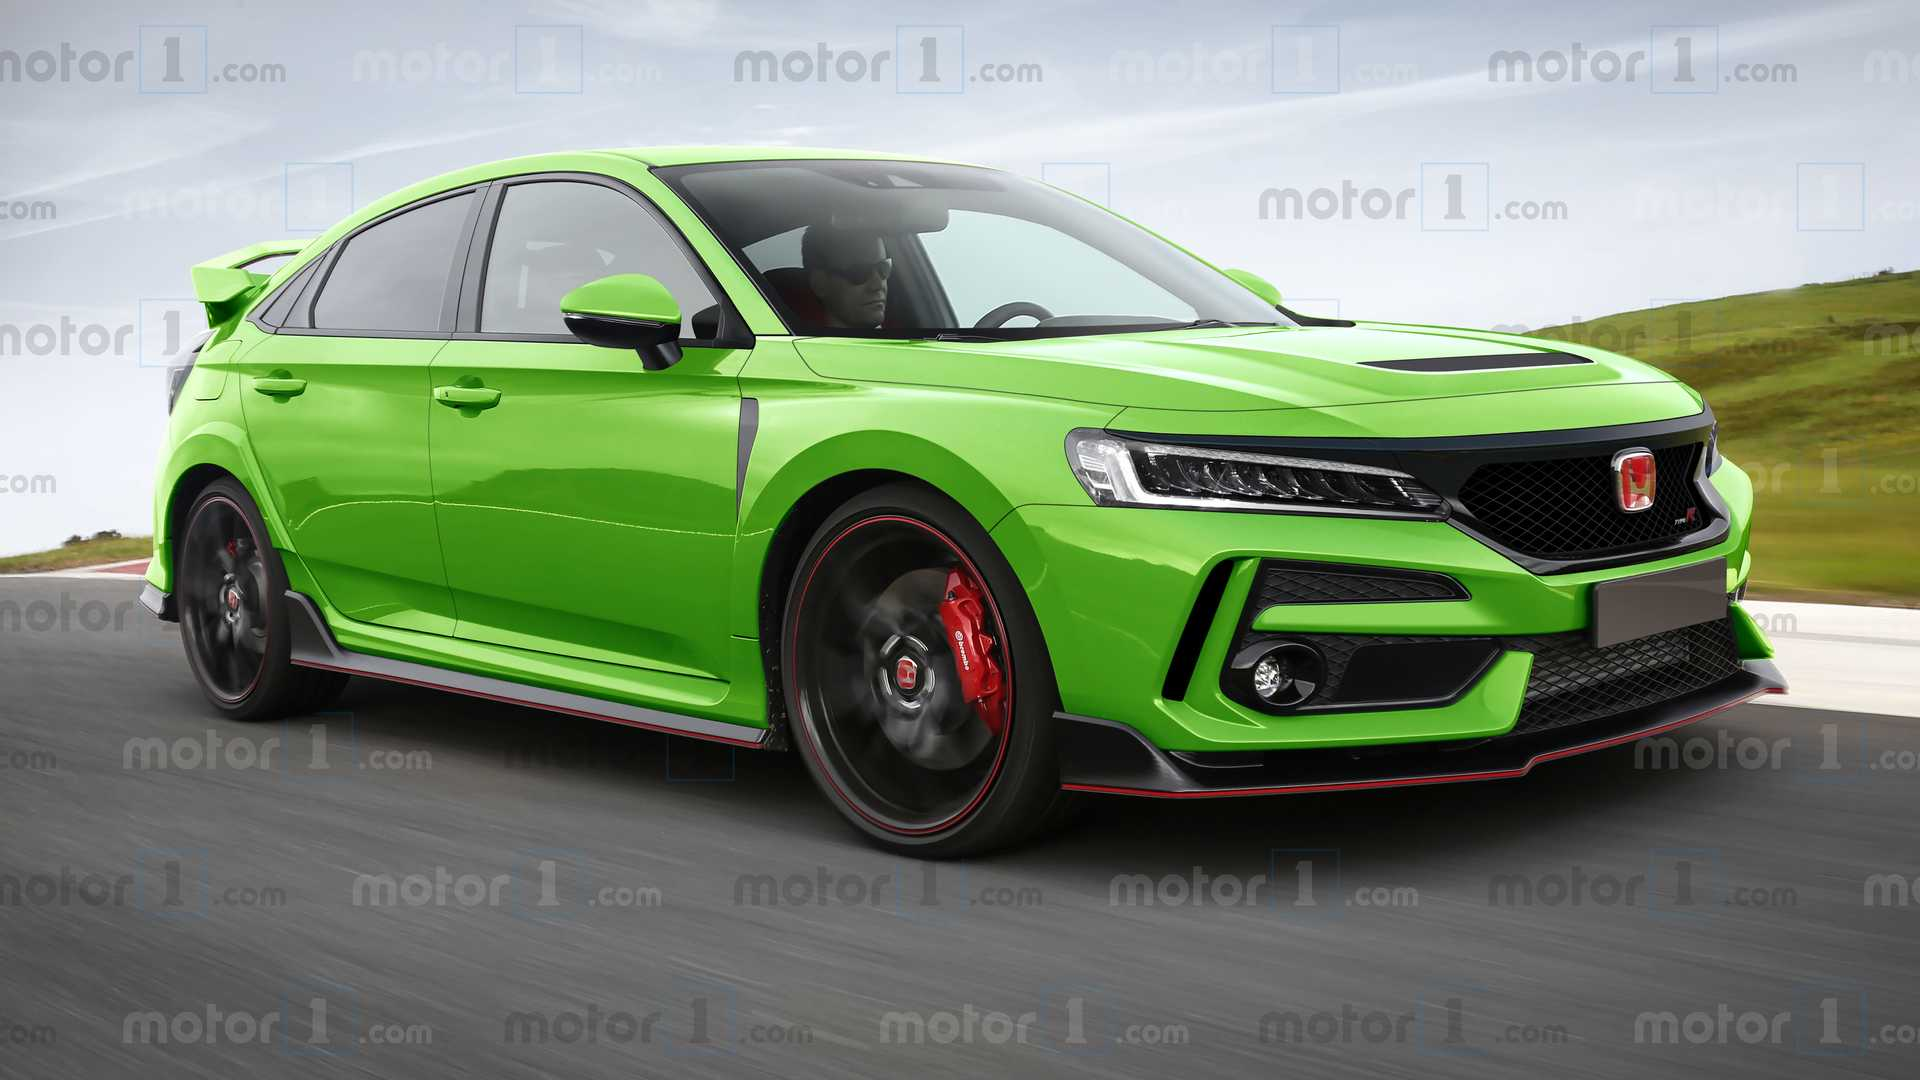 Next Gen Honda Civic Type R This Is What It Could Look Like